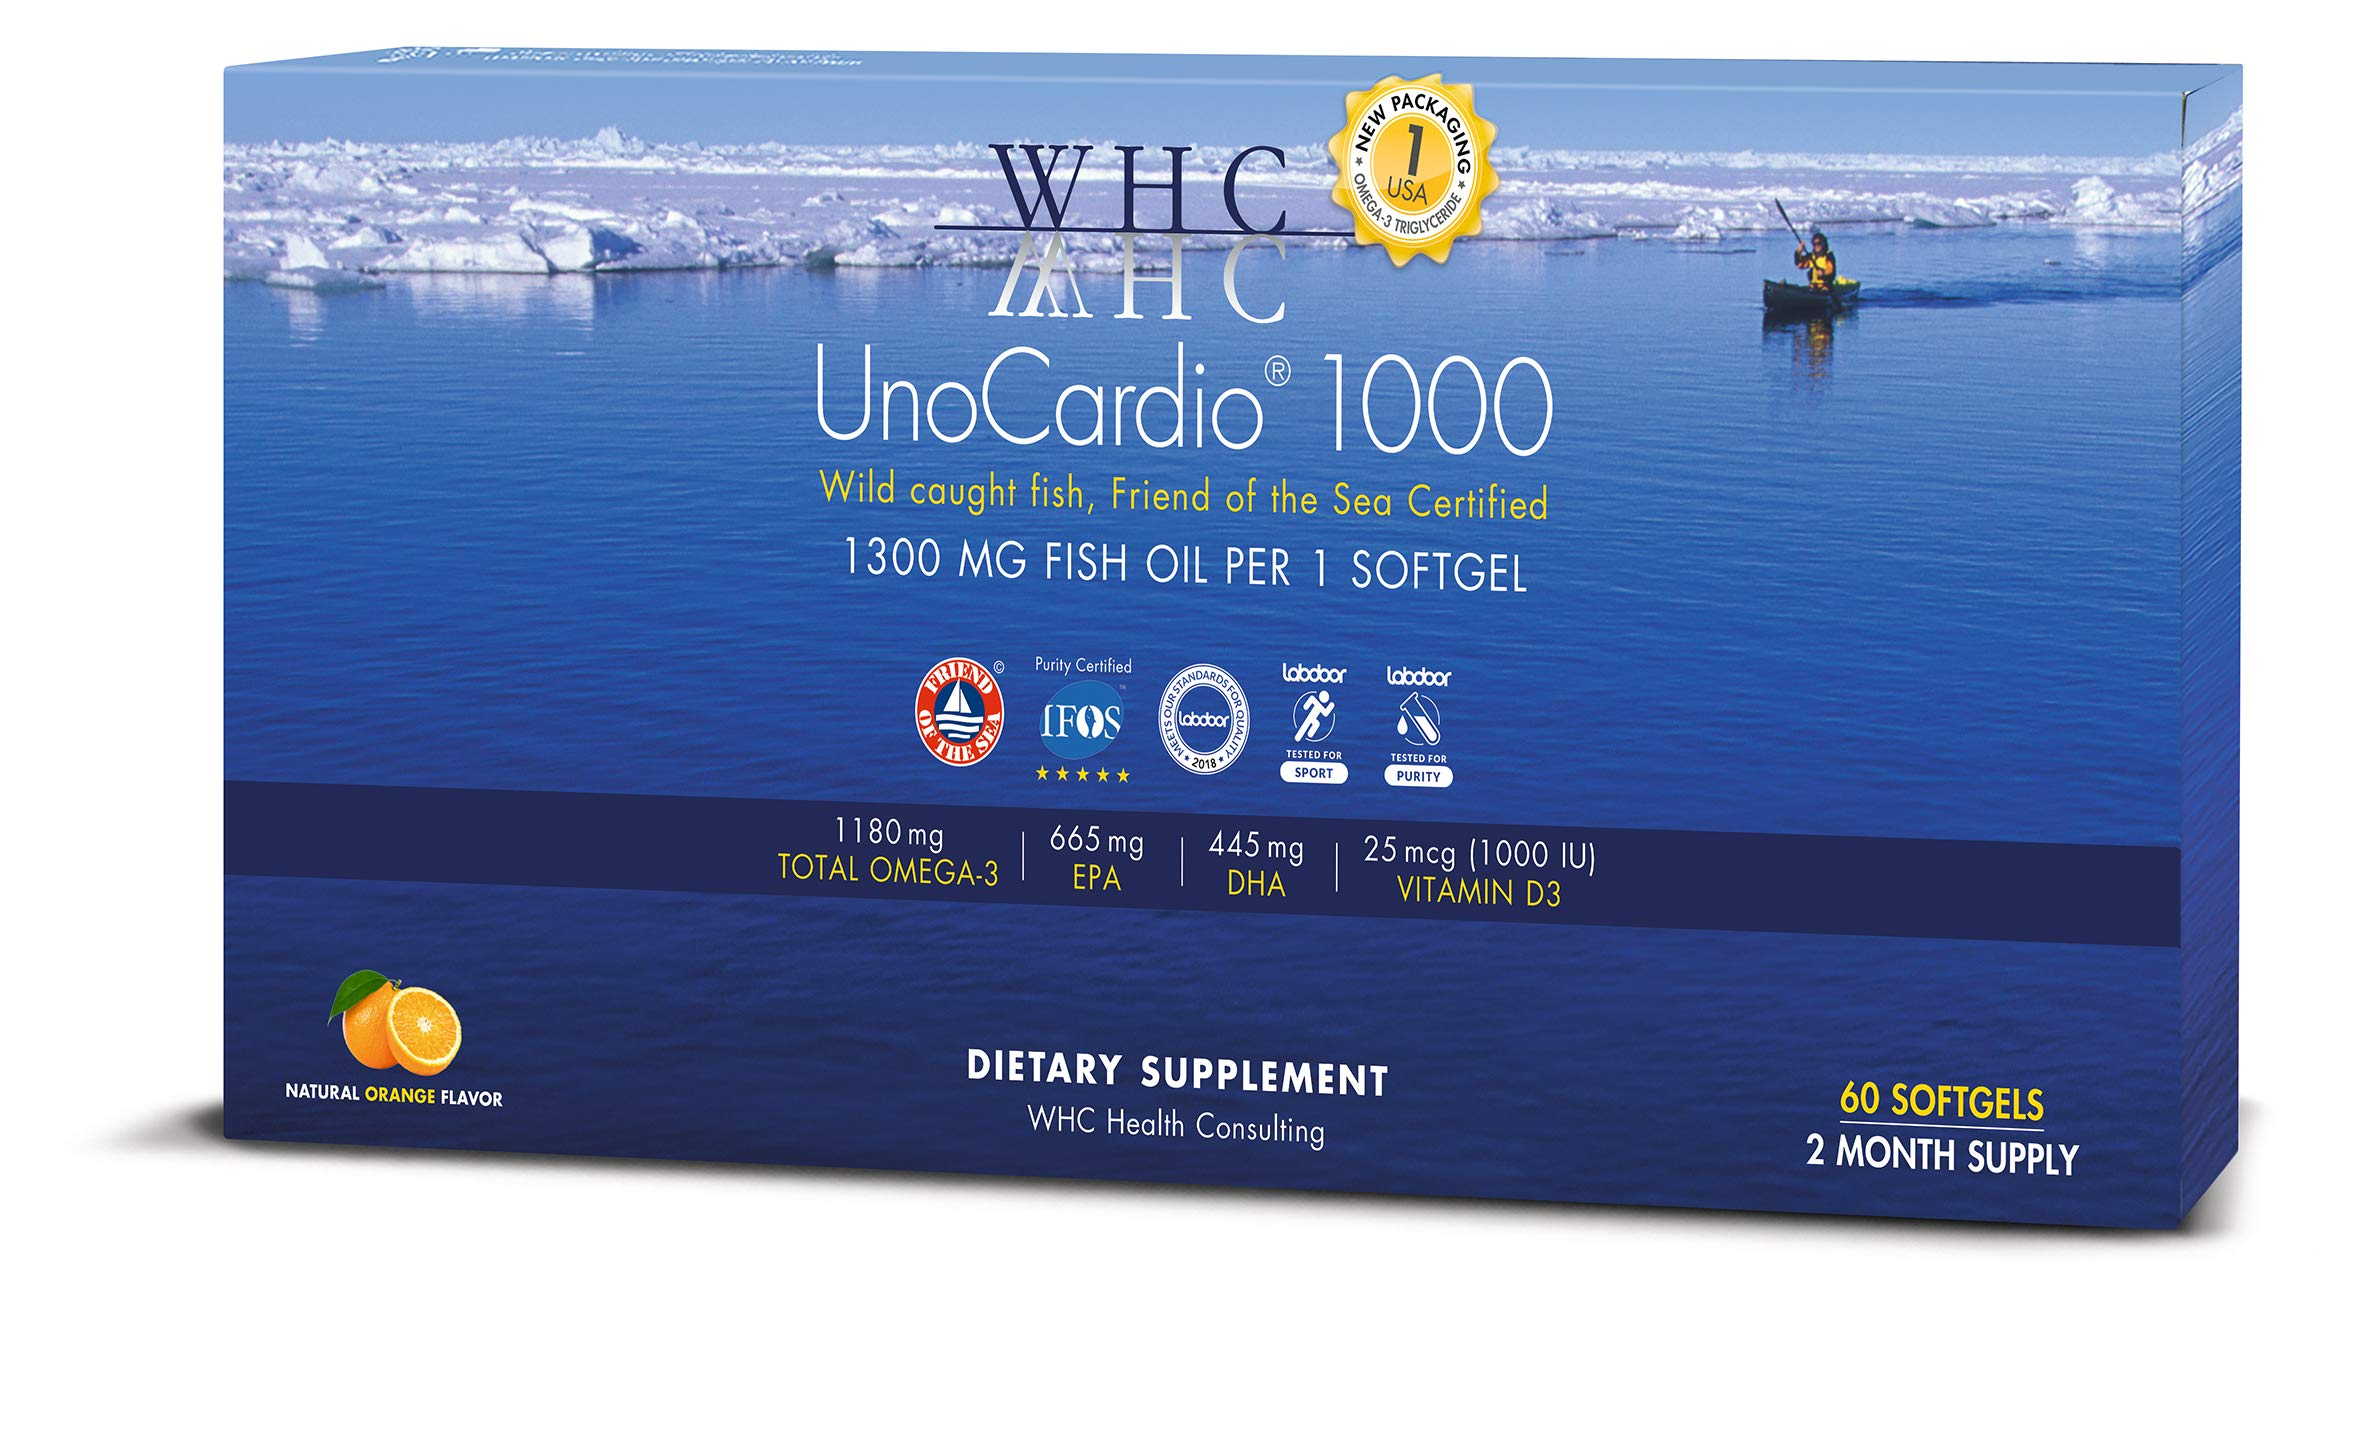 WHC - UnoCardio 1000 (60 Softgels) - 1300 mg of pure Triglyceride fish oil with high concentration omega-3 (1180 mg), 665 mg EPA and 445 mg DHA and 25 mcg (1000 IU) vitamin D3 per softgel by WHC